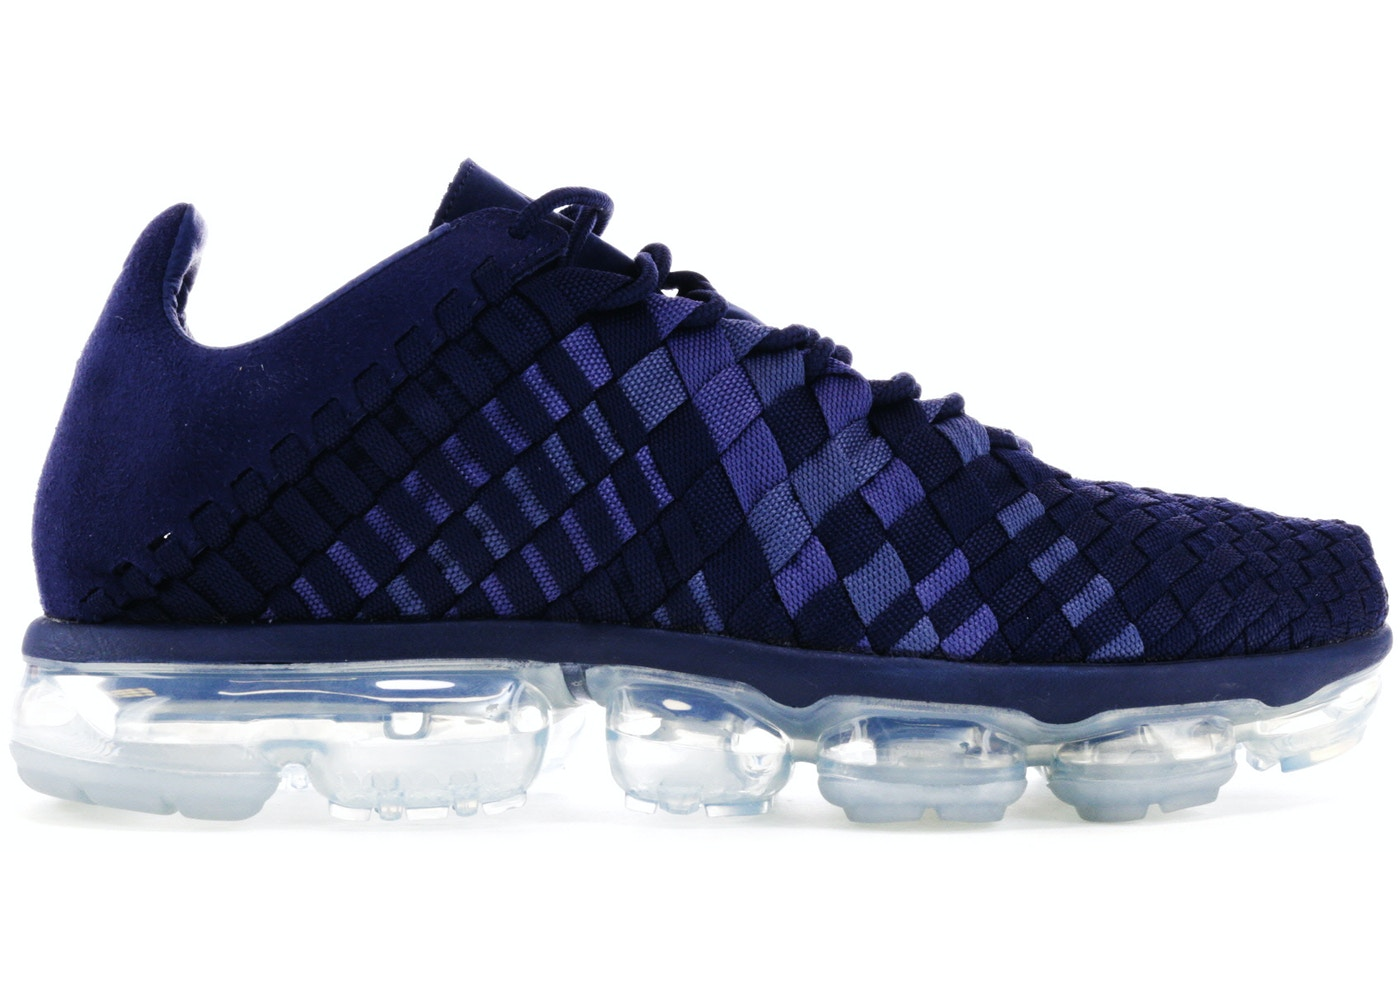 408786e569a6a Air VaporMax Inneva Midnight Navy - AO2447-400